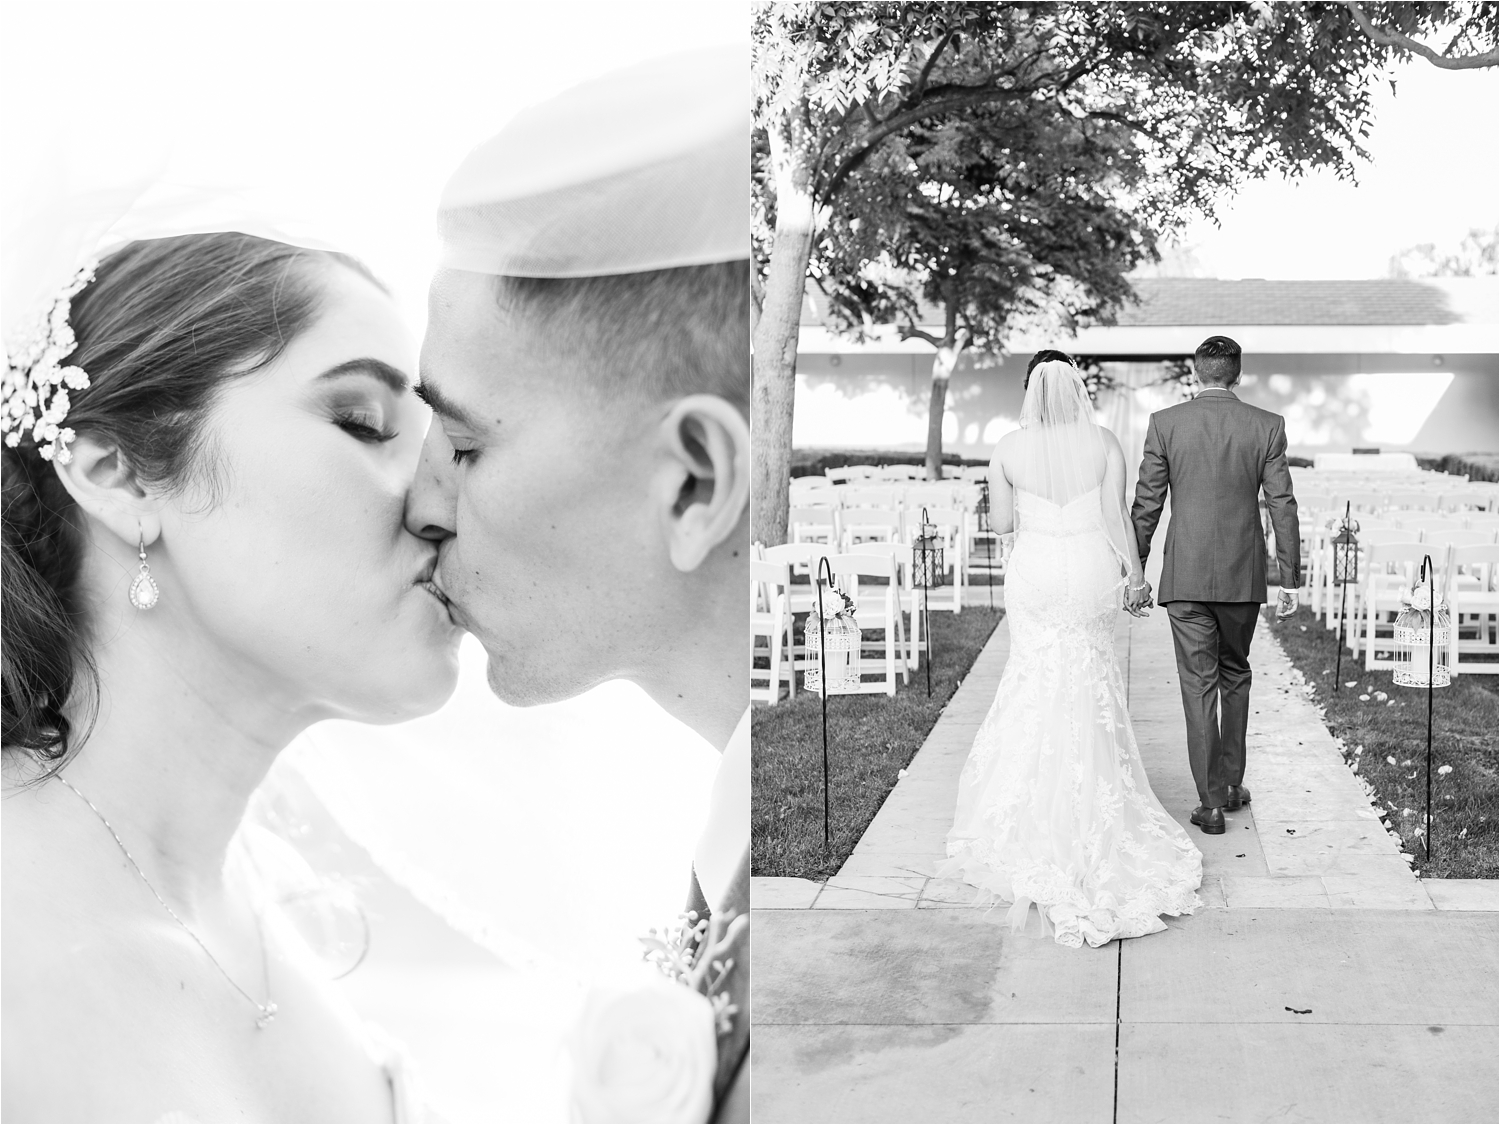 Dreamy Black and White Wedding Photos - https://brittneyhannonphotography.com